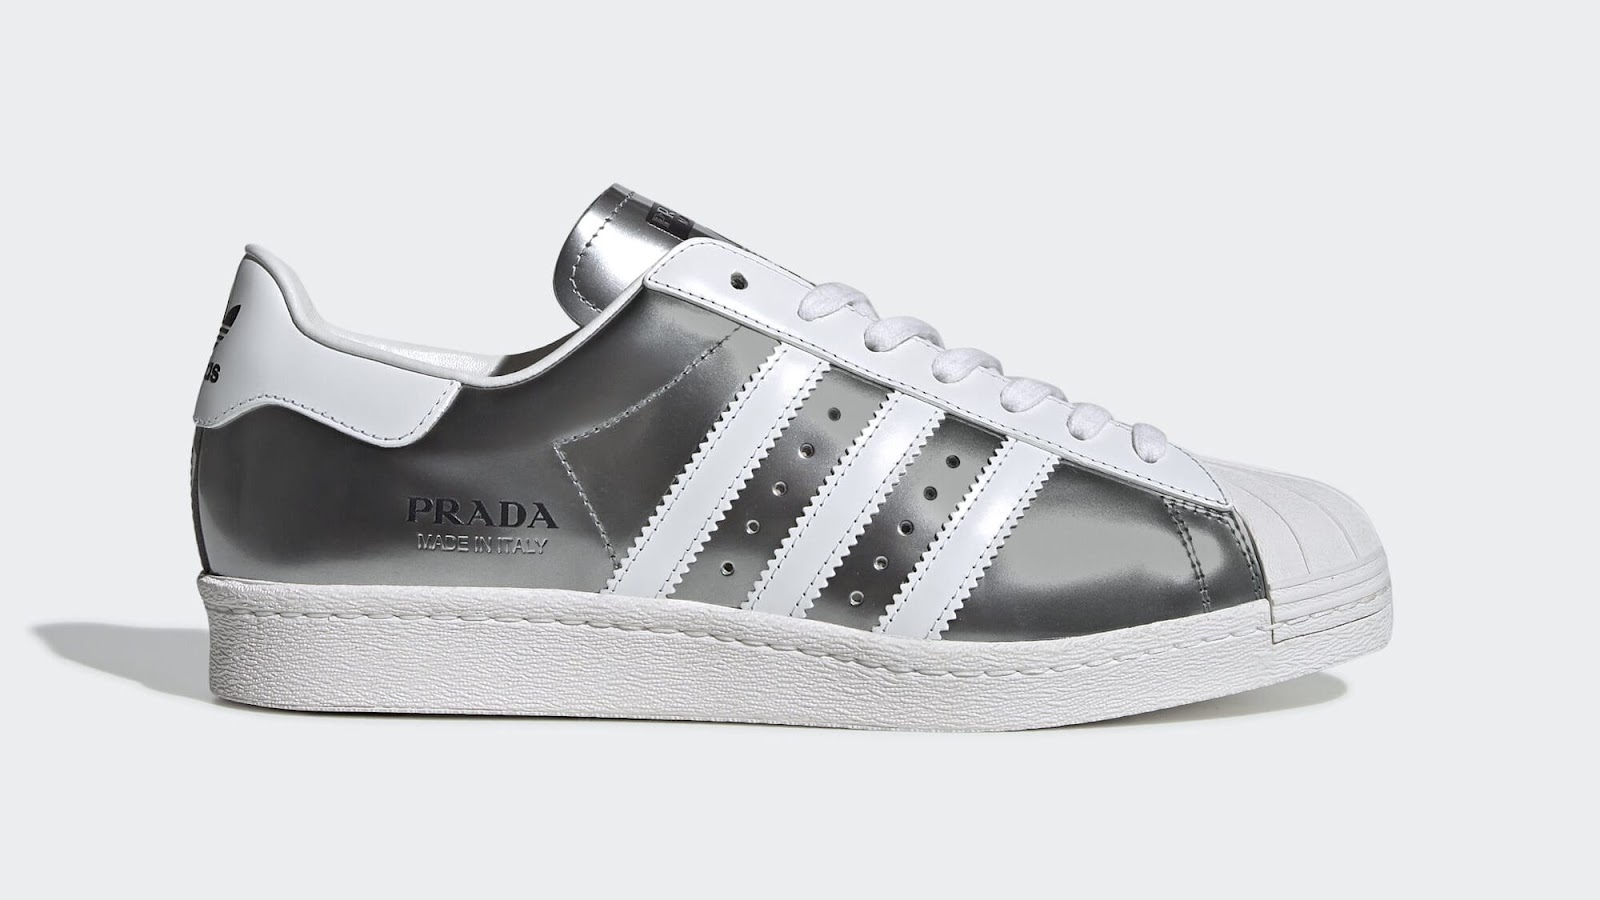 adidas x Prada - the A+P LUNA ROSSA tennis shoe, created for cruising 3